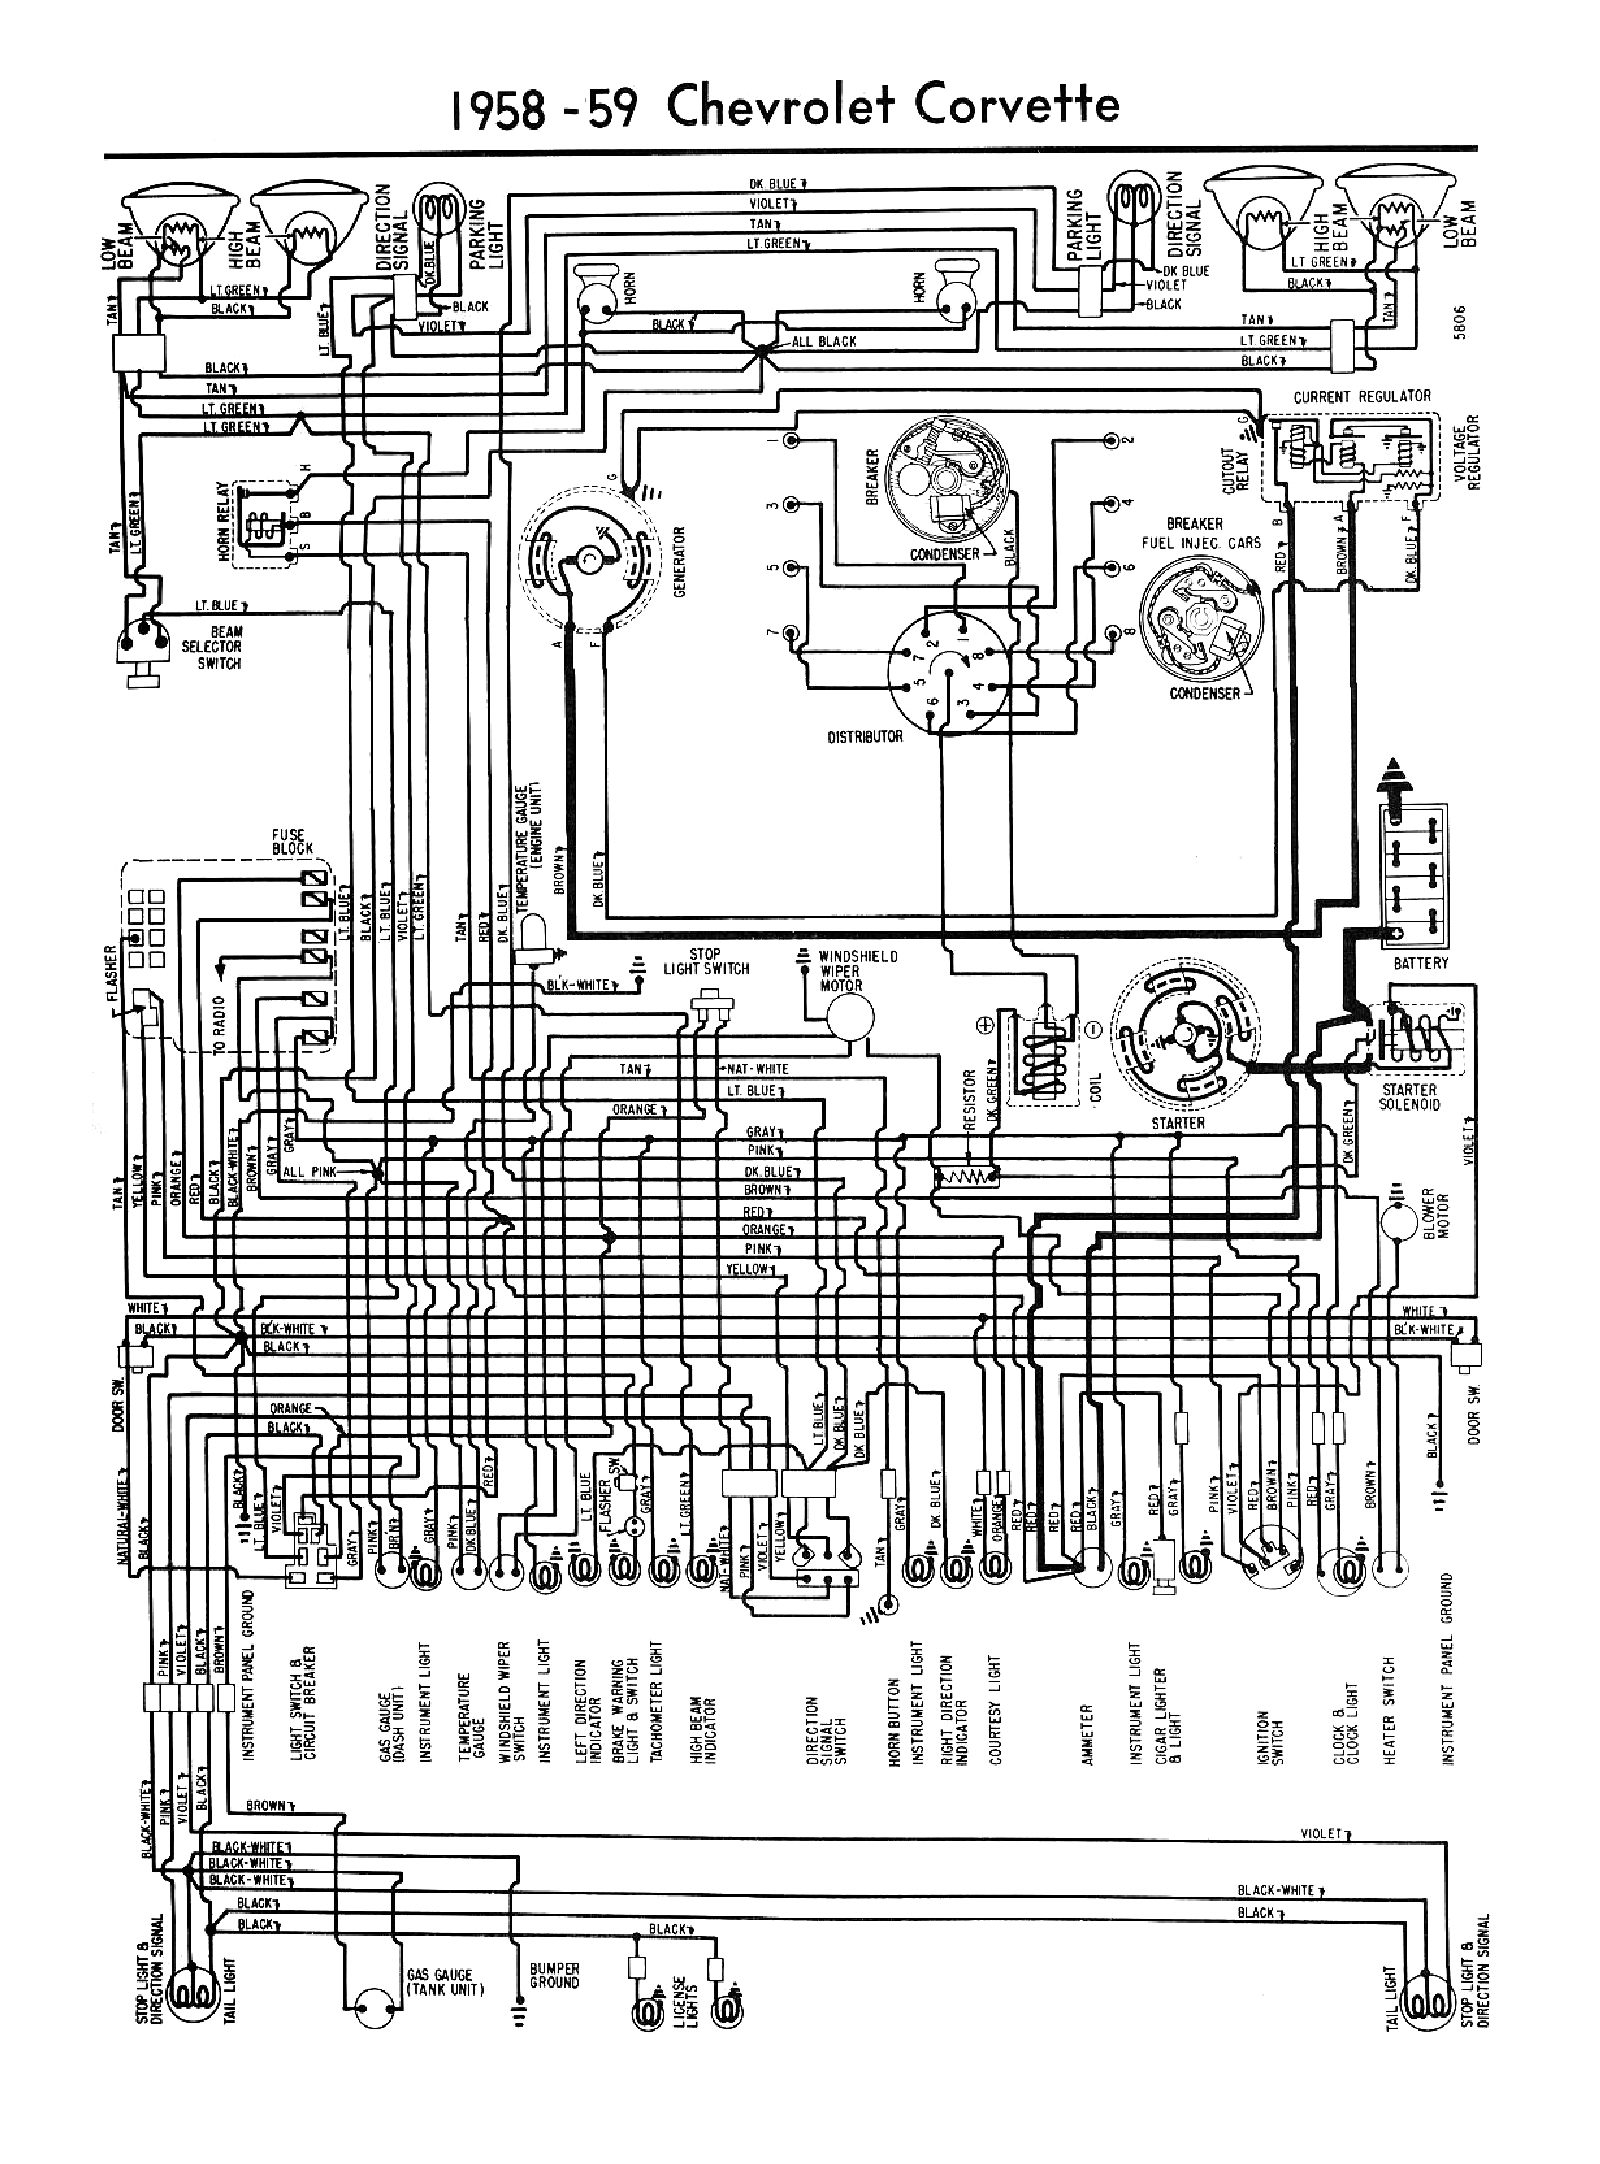 58 Chevy Wiring Diagram Wiring Diagram